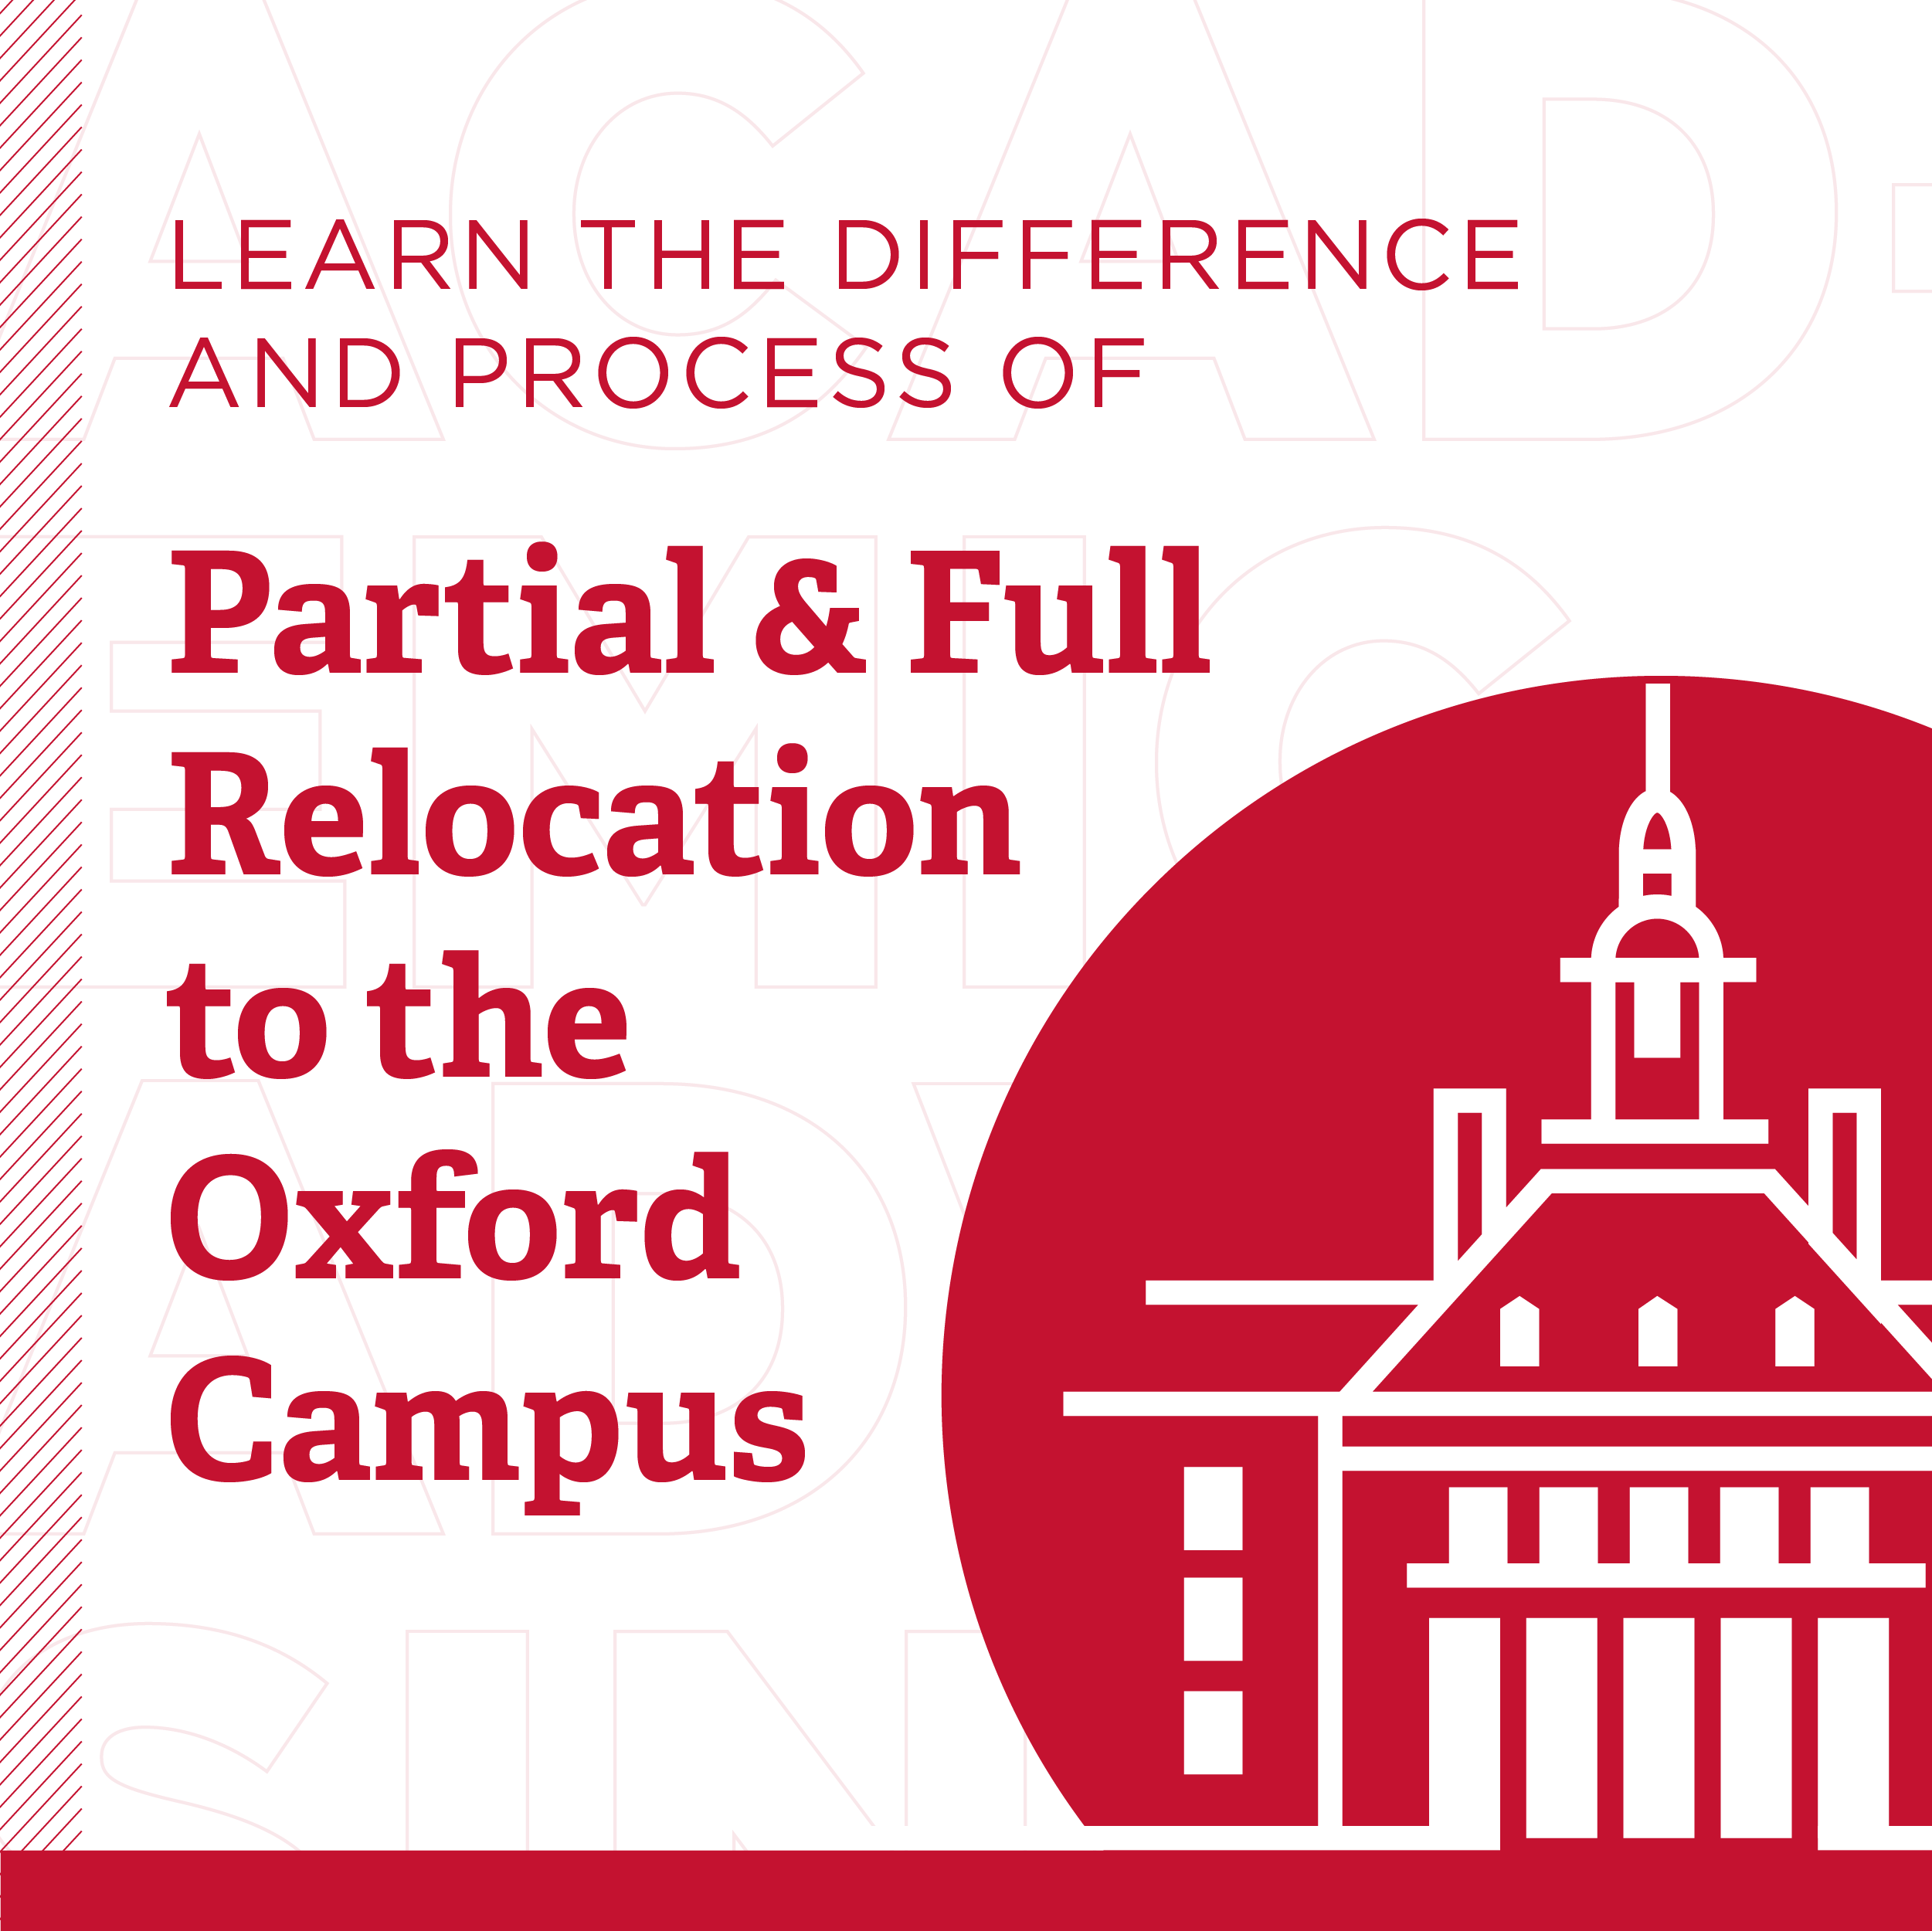 Learn the Difference and Process of Partial and Full Relocation to the Oxford Campus, Image of a building in Oxford